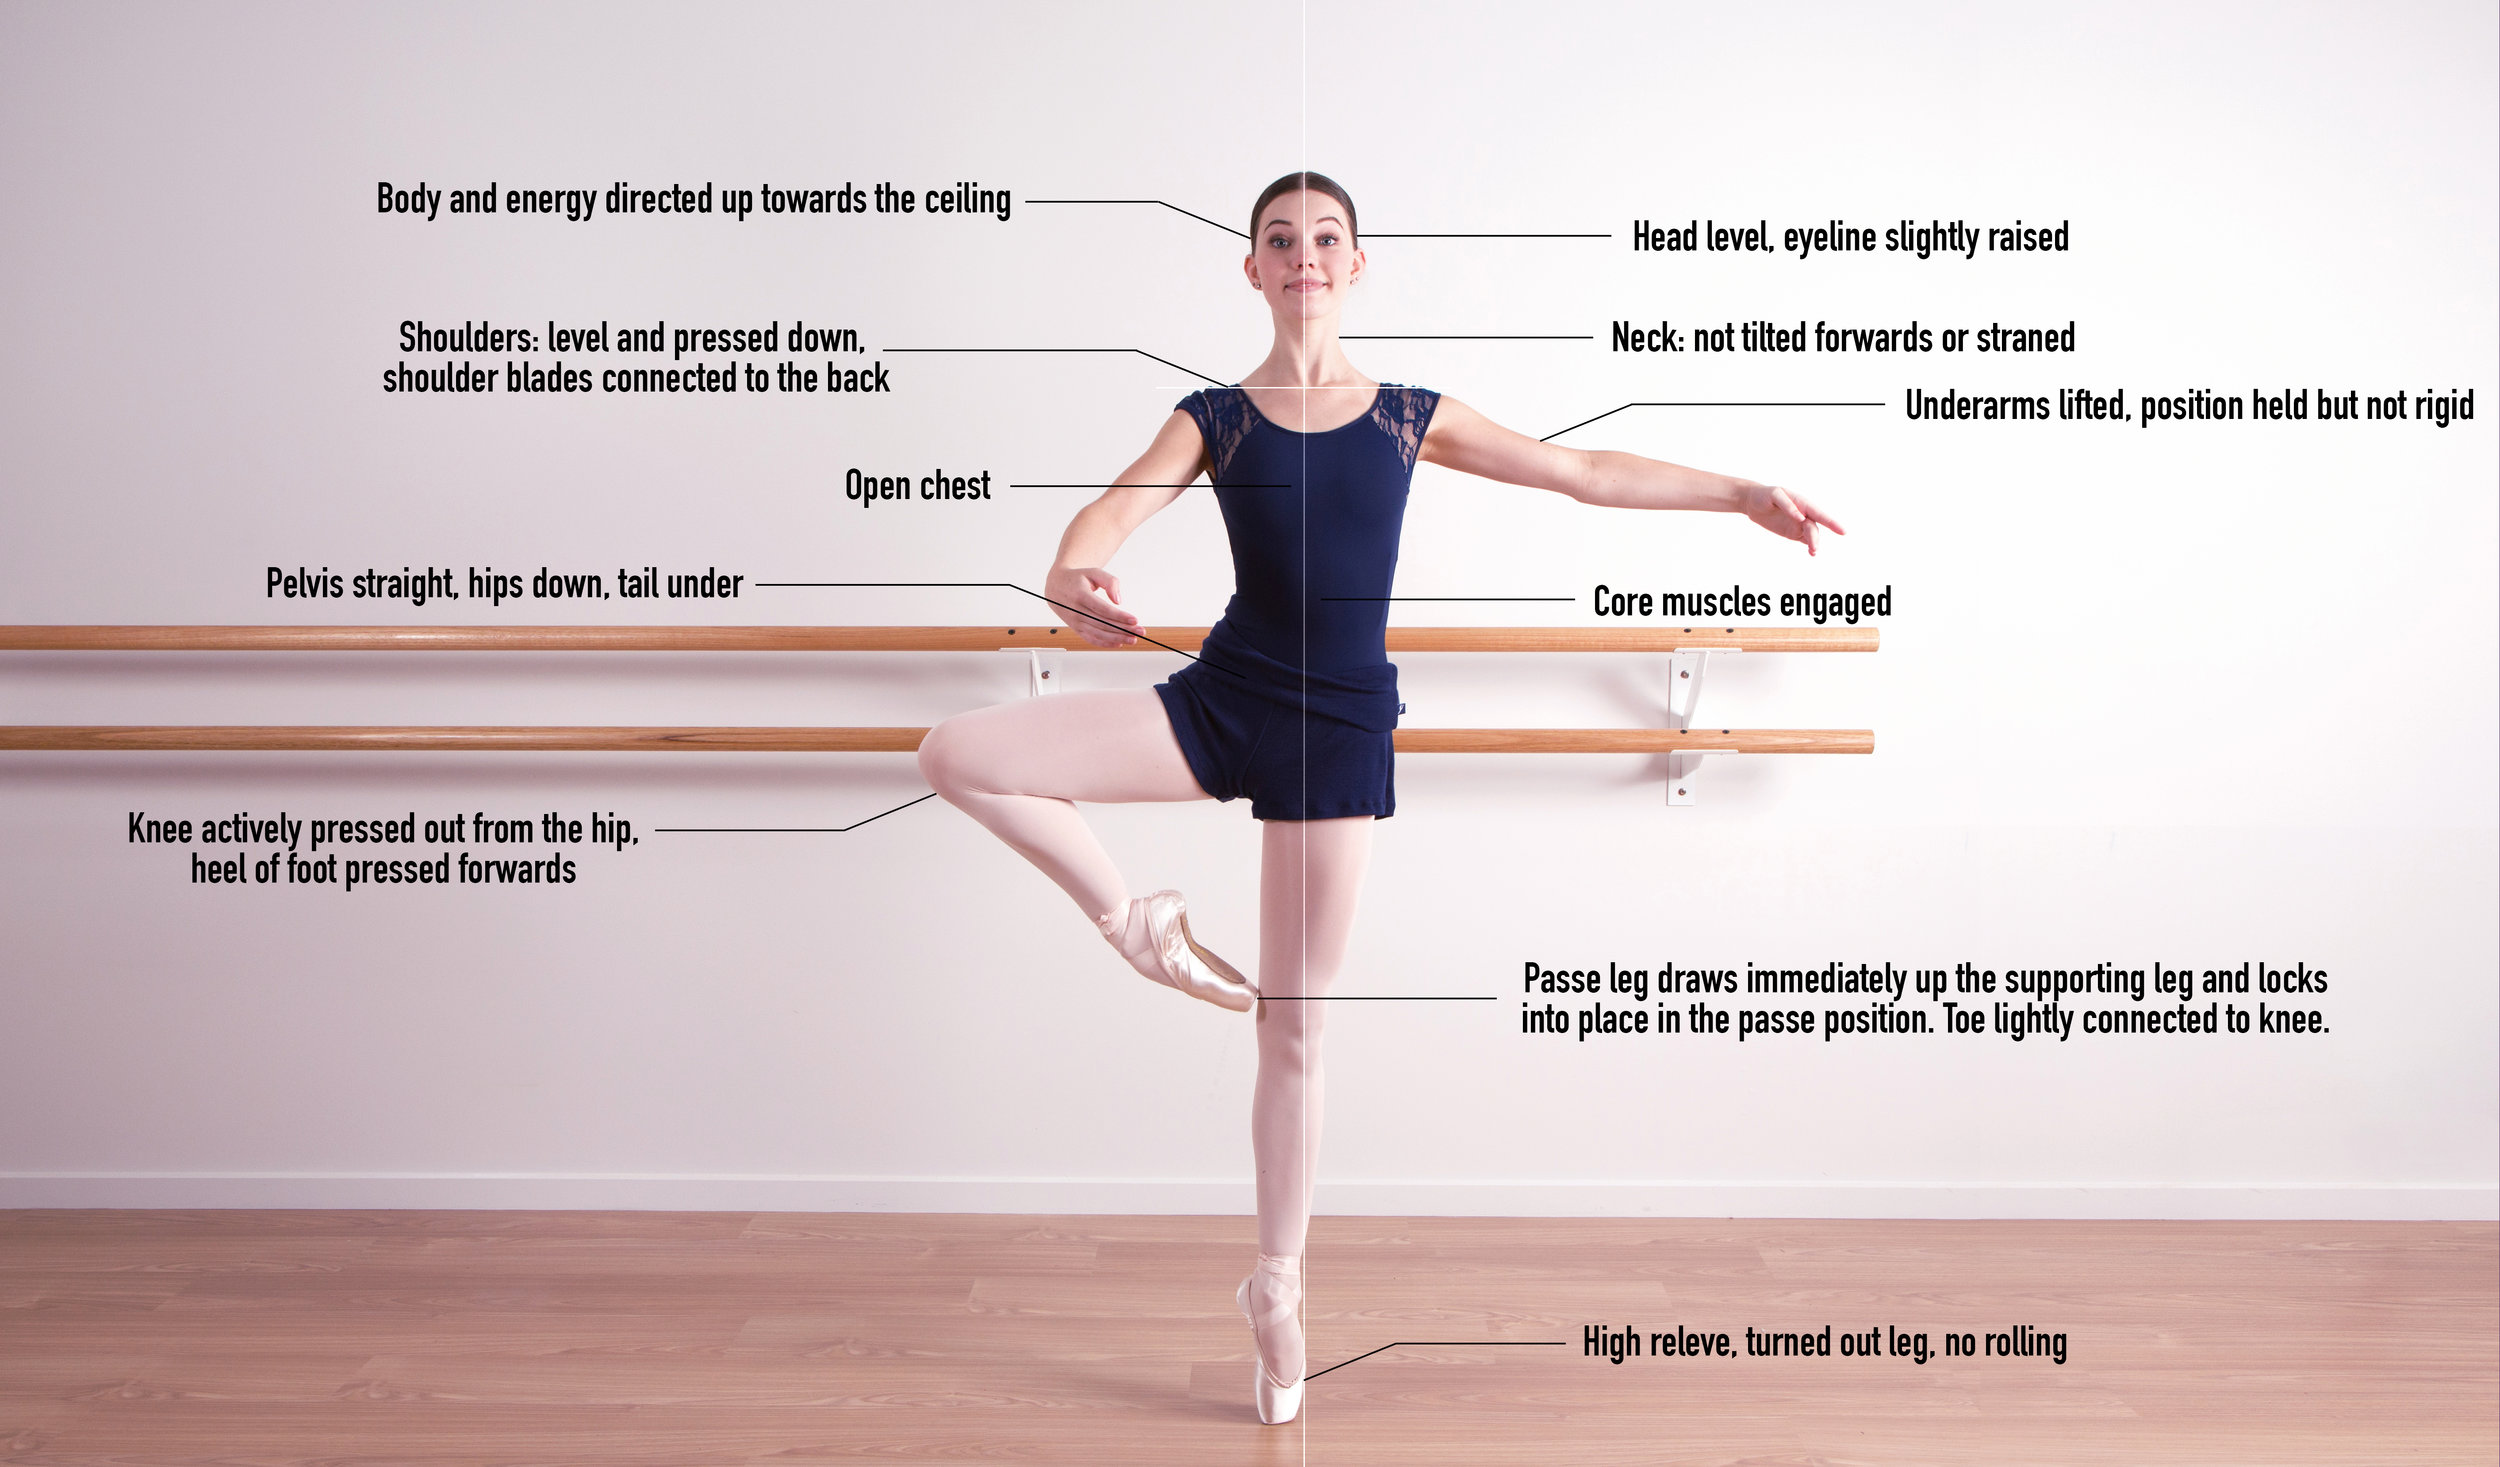 Pirouette_tips_EDITED.jpg